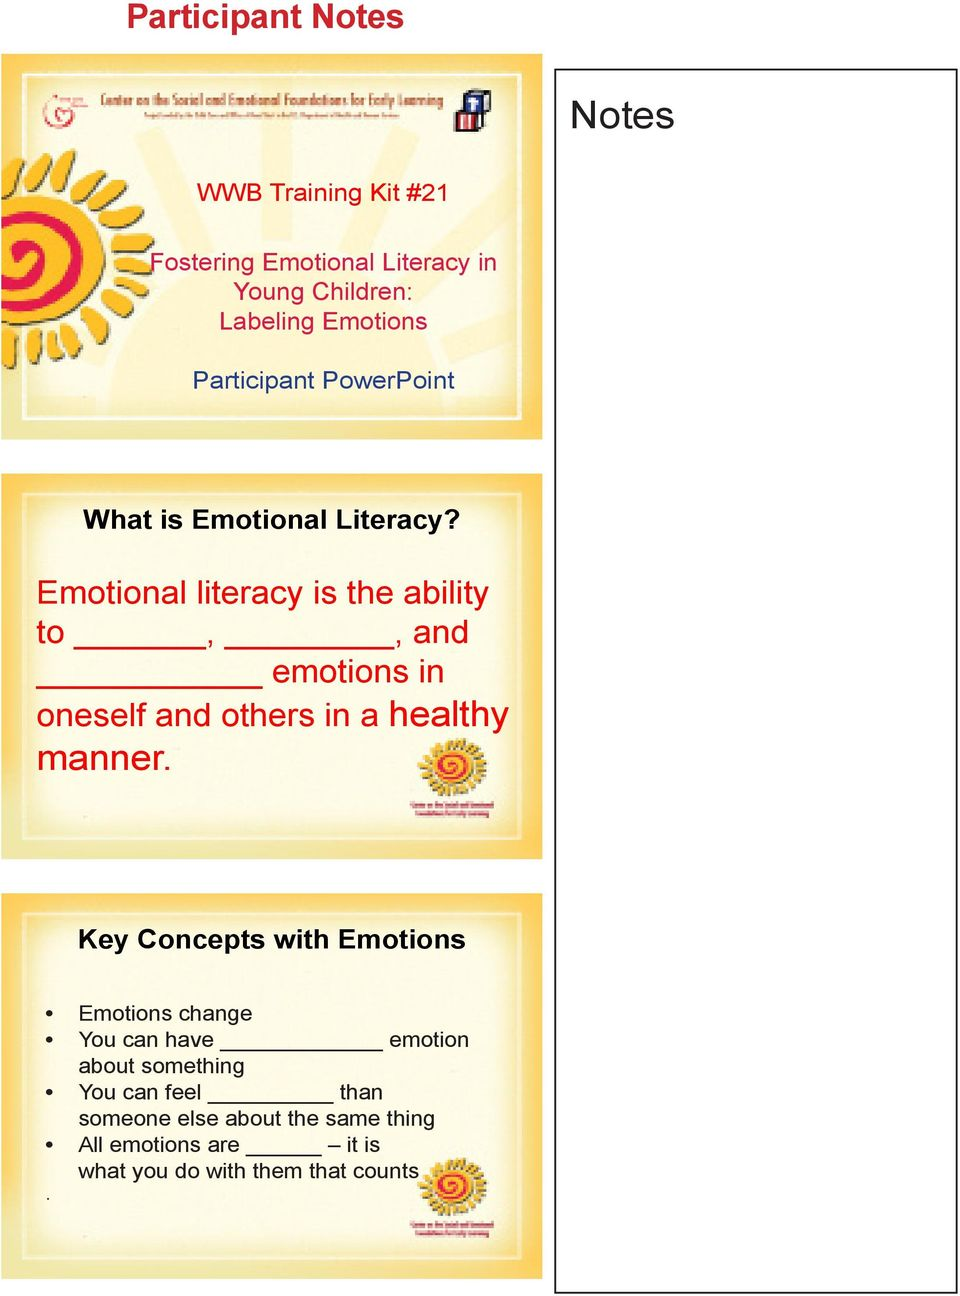 Emotional literacy is the ability to,, and emotions in oneself and others in a healthy manner.